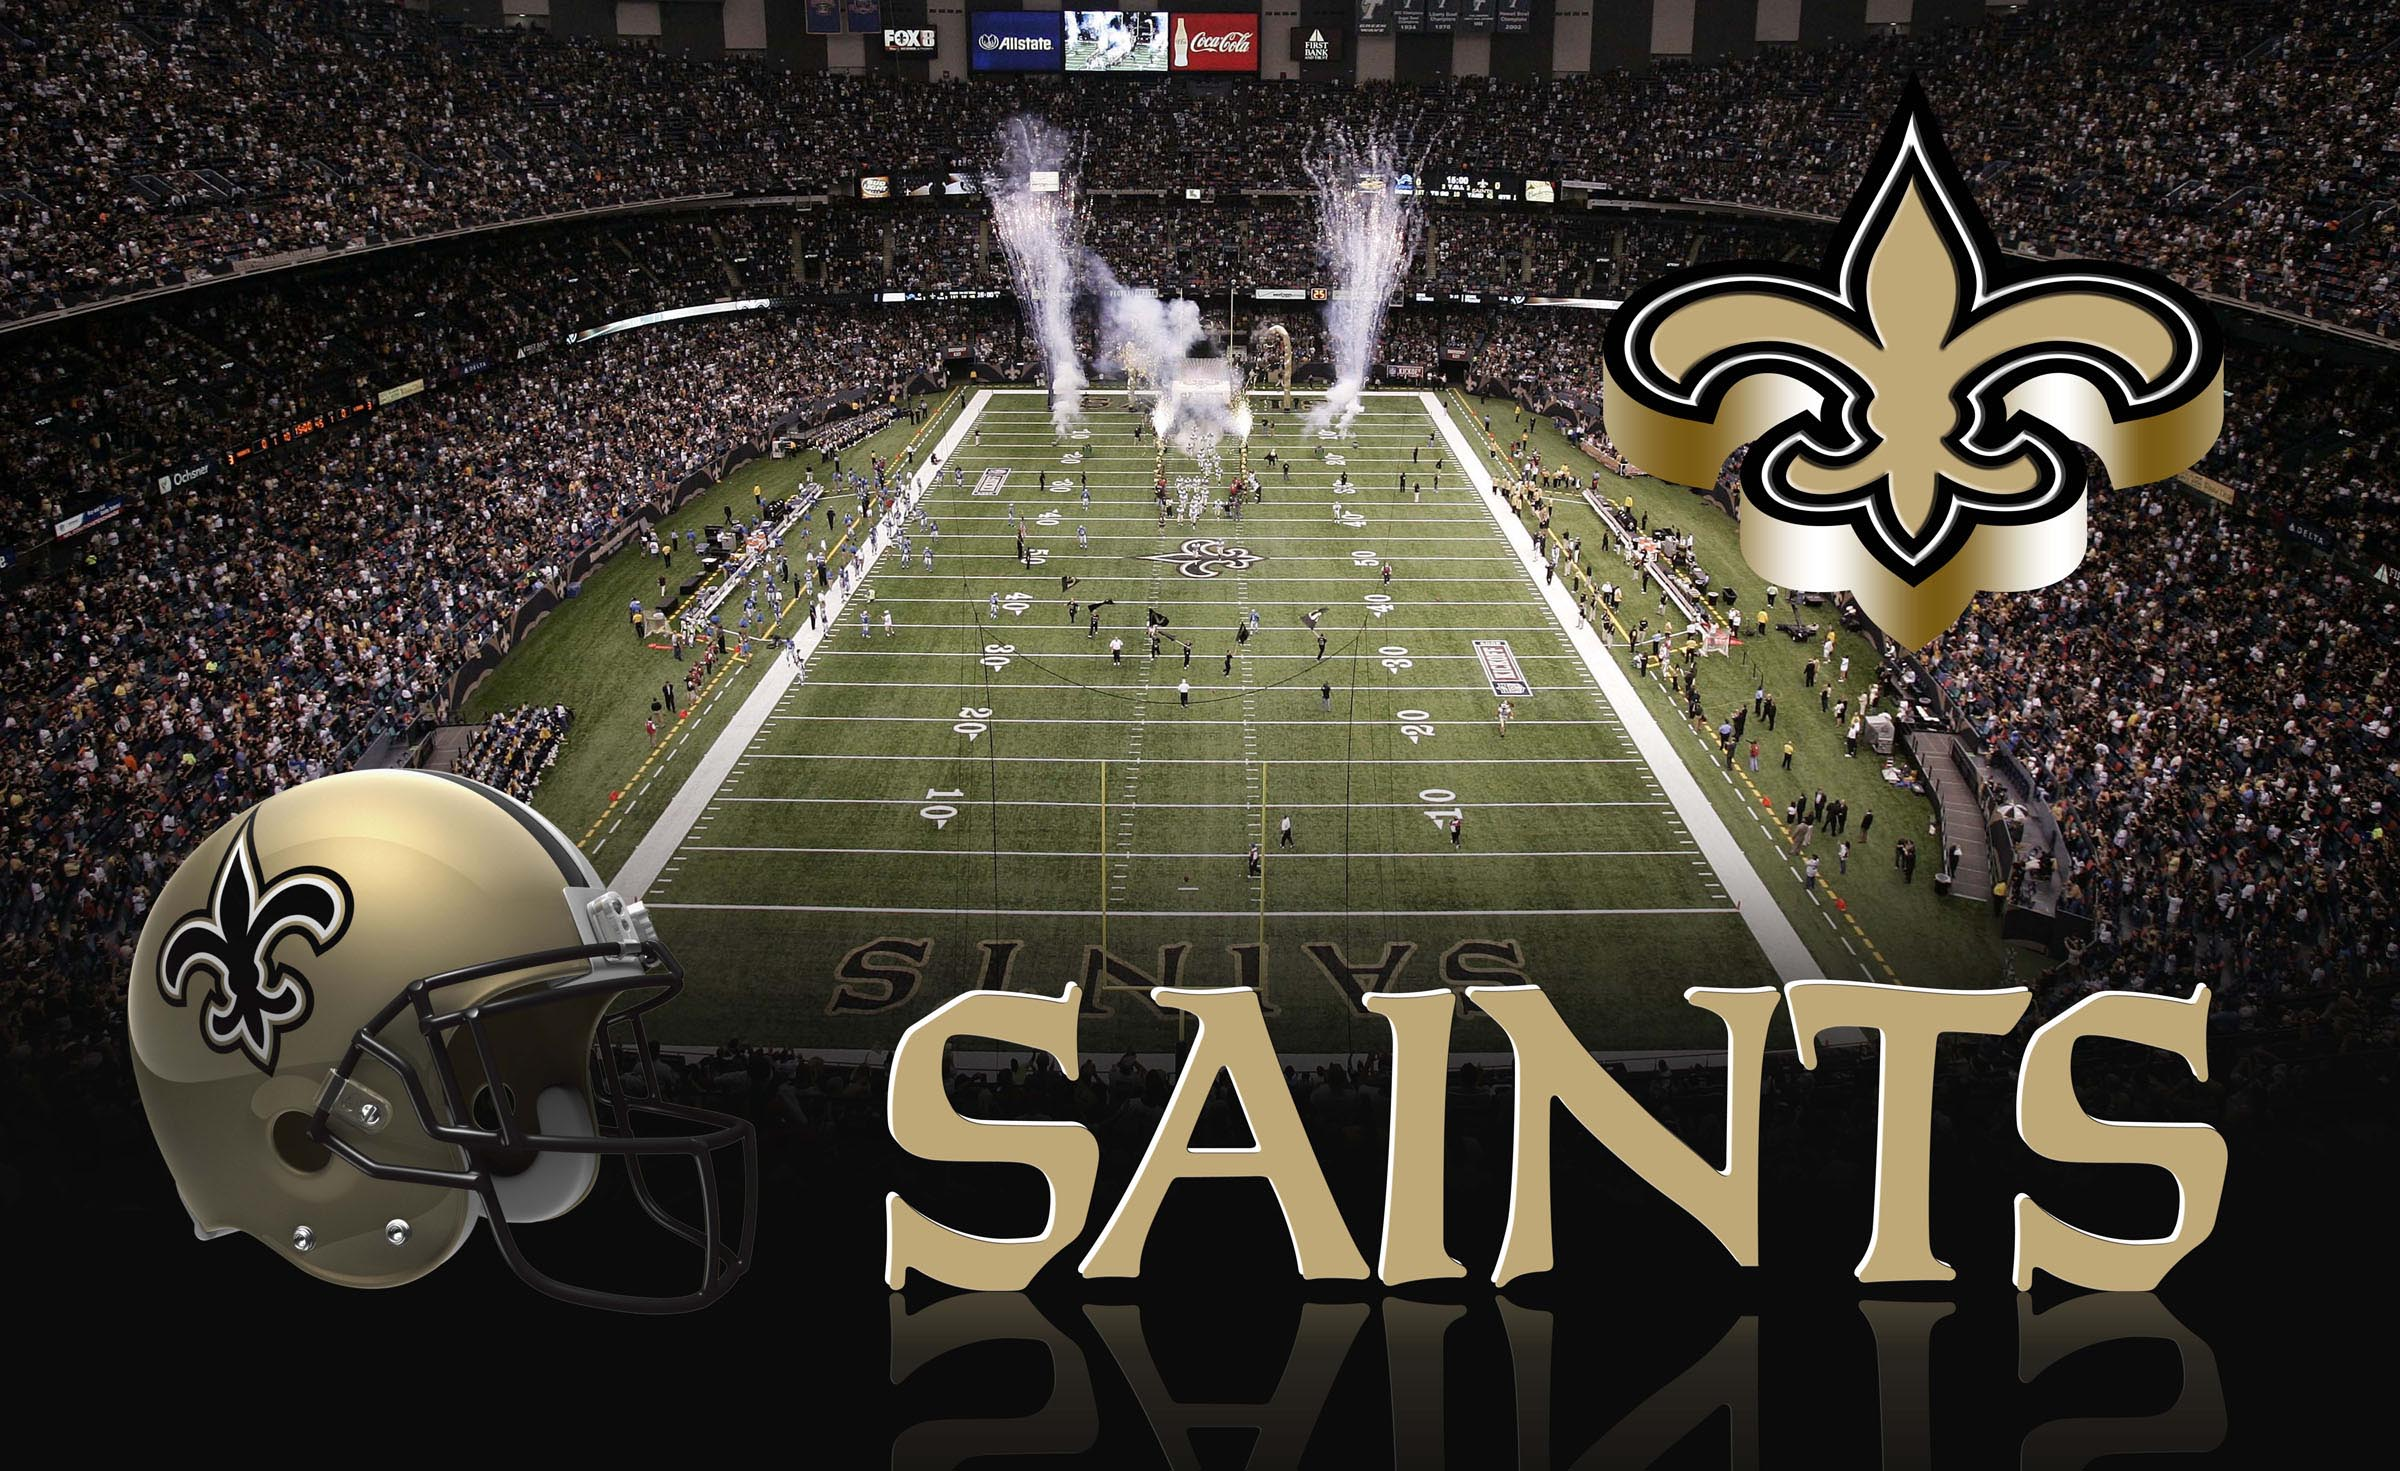 NEW ORLEANS SAINTS nfl football f wallpaper | 2400x1471 ...